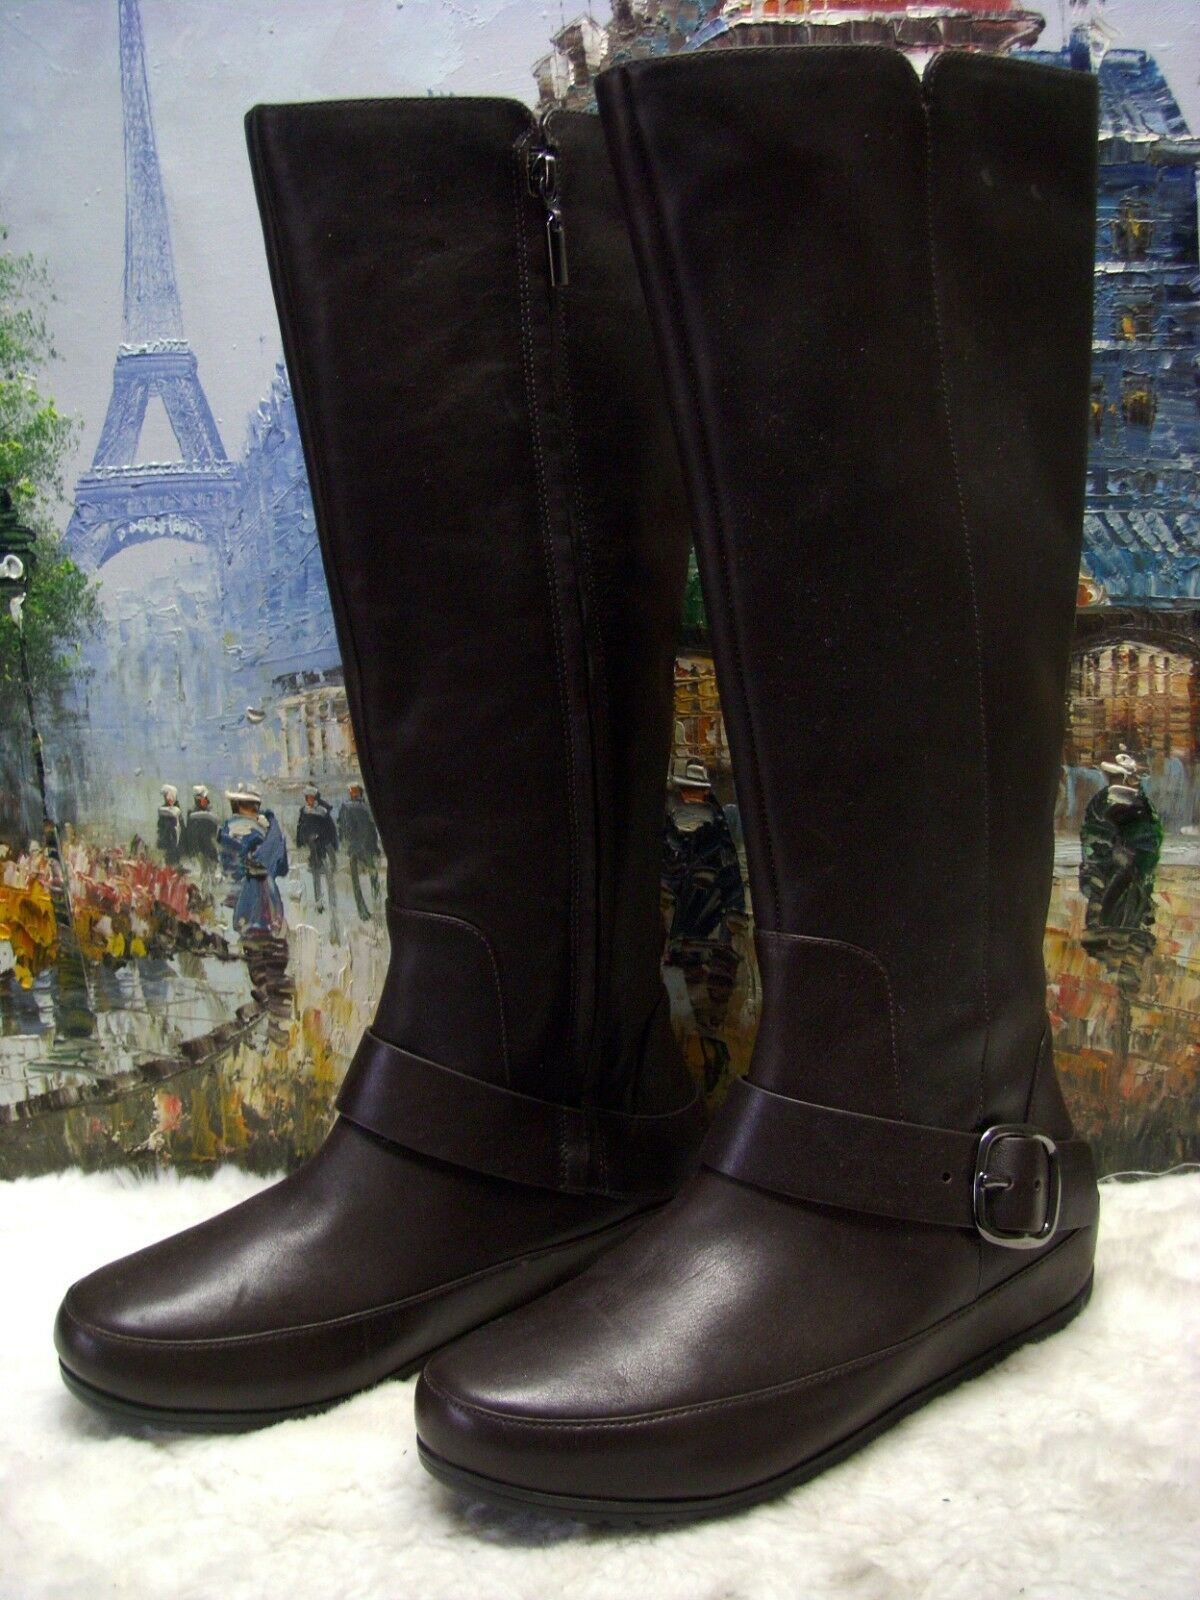 FitFlop 'Dueboot Buckle' Tall Leather Boot - Size 37 - $294.95